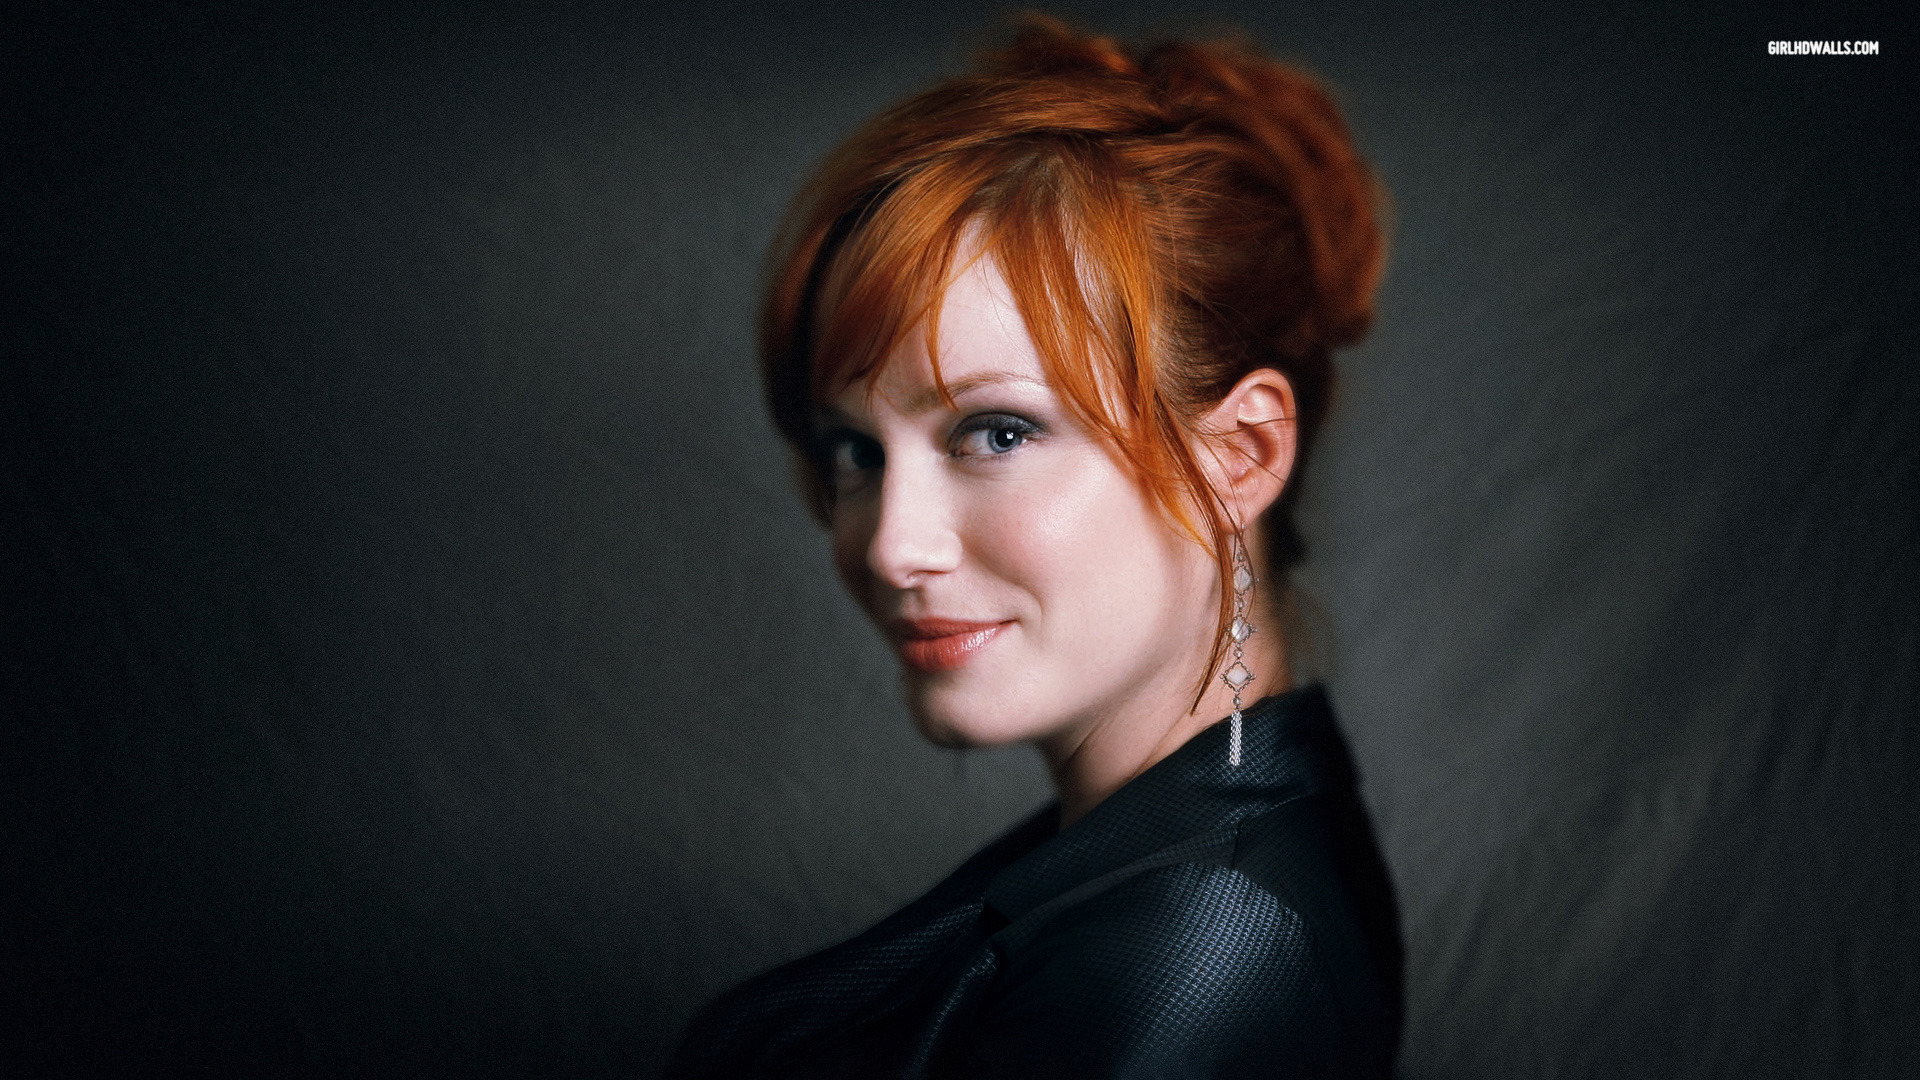 Christina Hendricks wallpaper 749 1920x1080